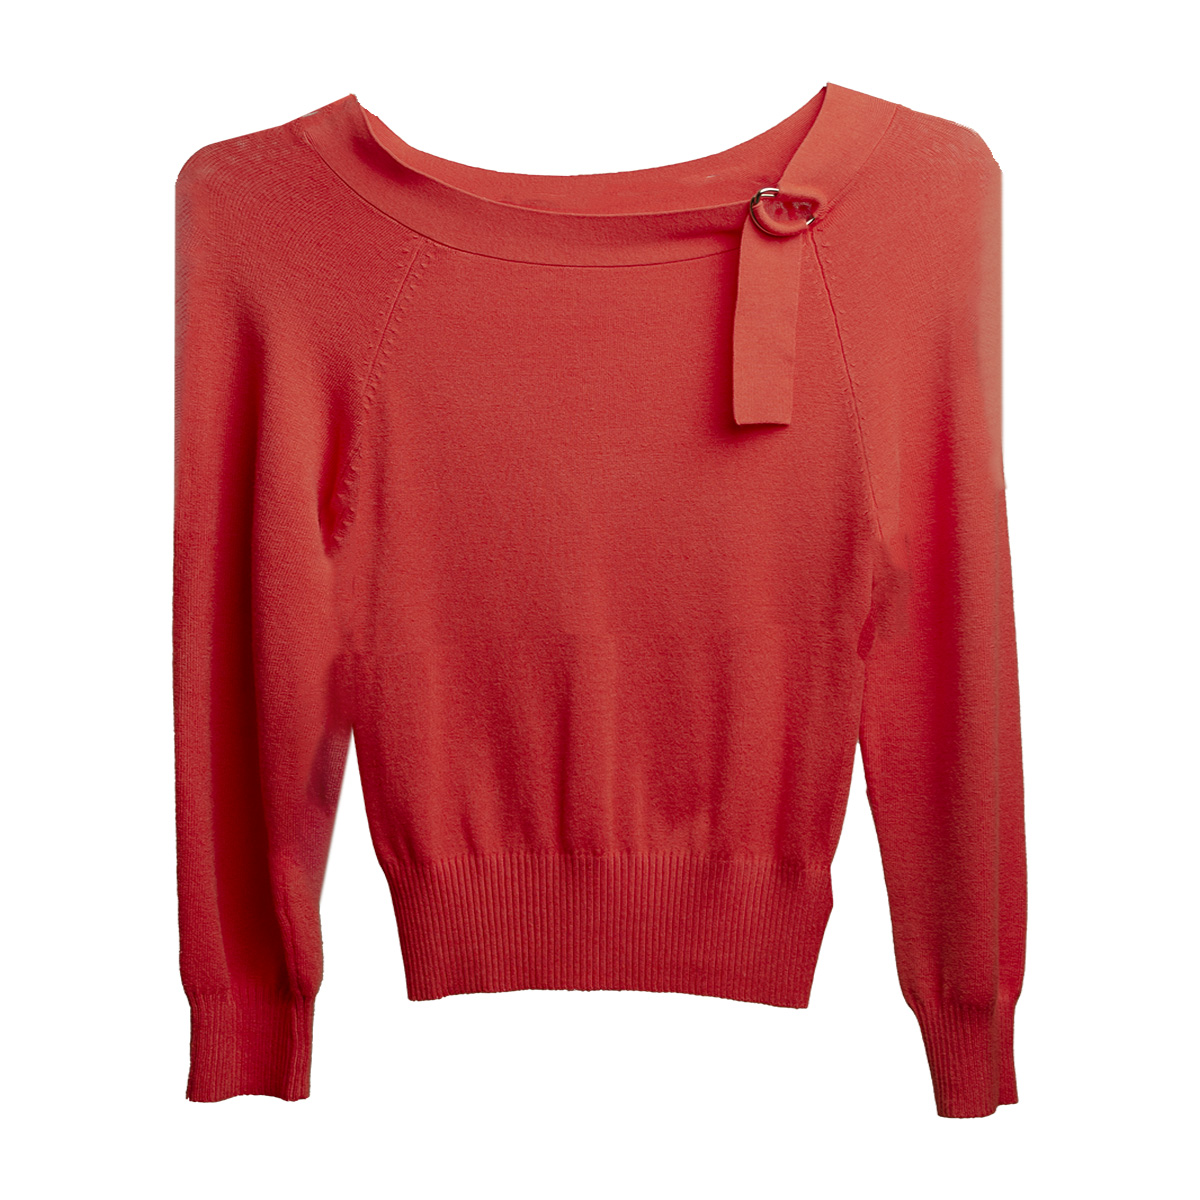 Orange Pullover sweater